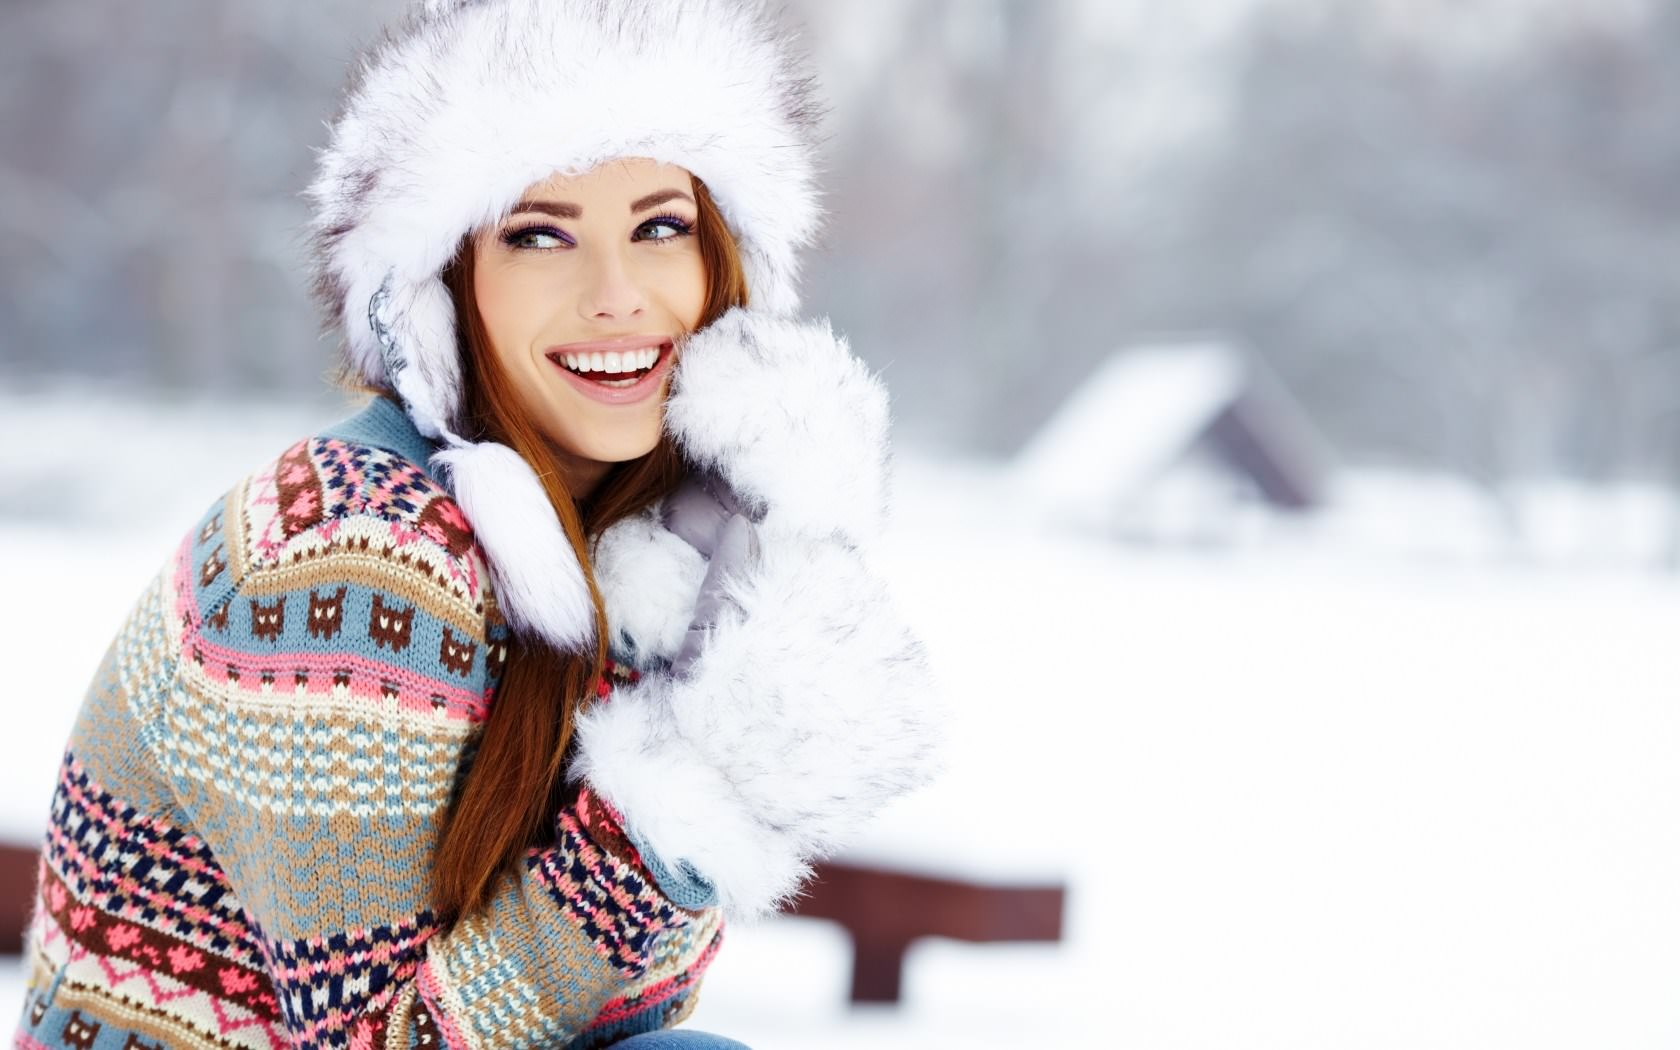 Hair Extensions: Winter Care Tips